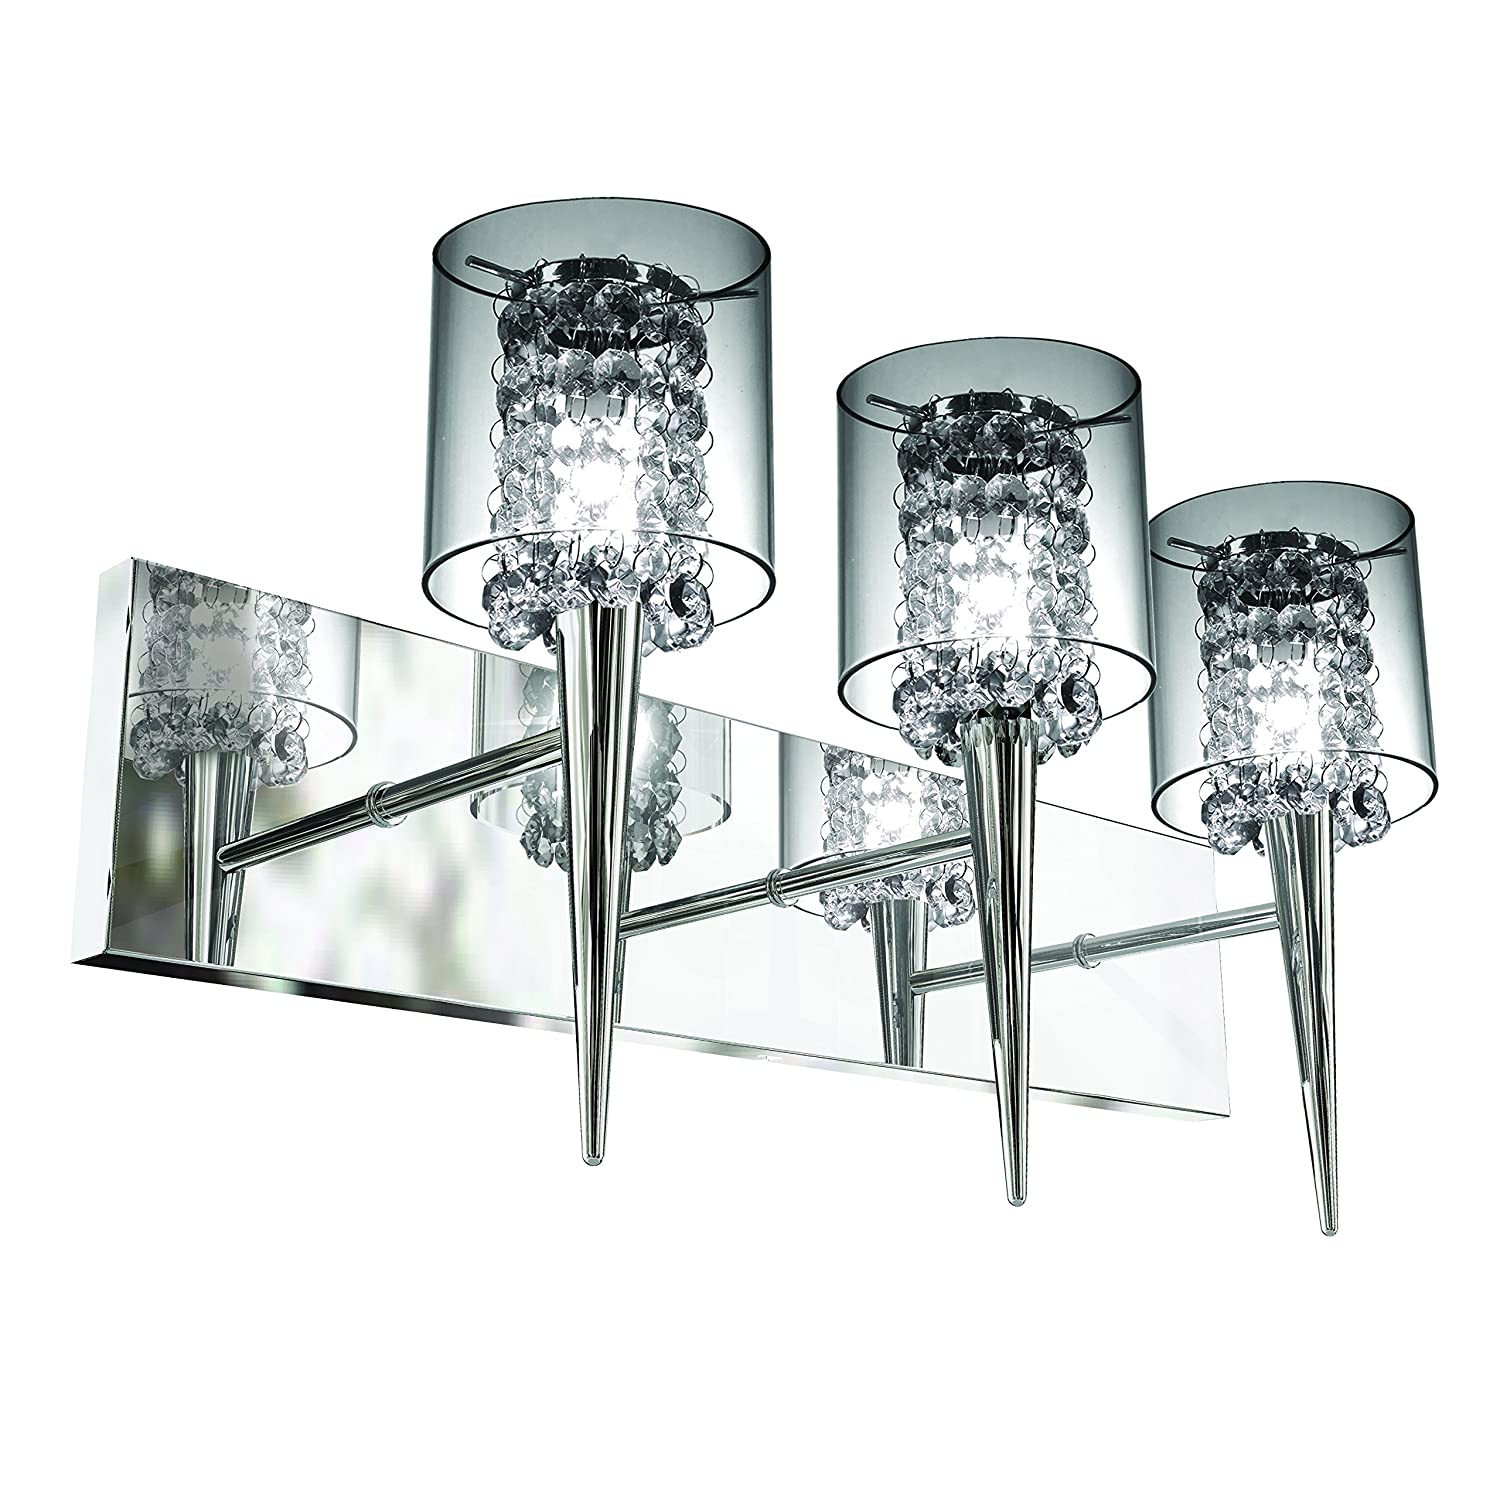 Easy Installation Bazz Elegant Glass Shade Triple Wall Fixture Direct Wiring Dimmable